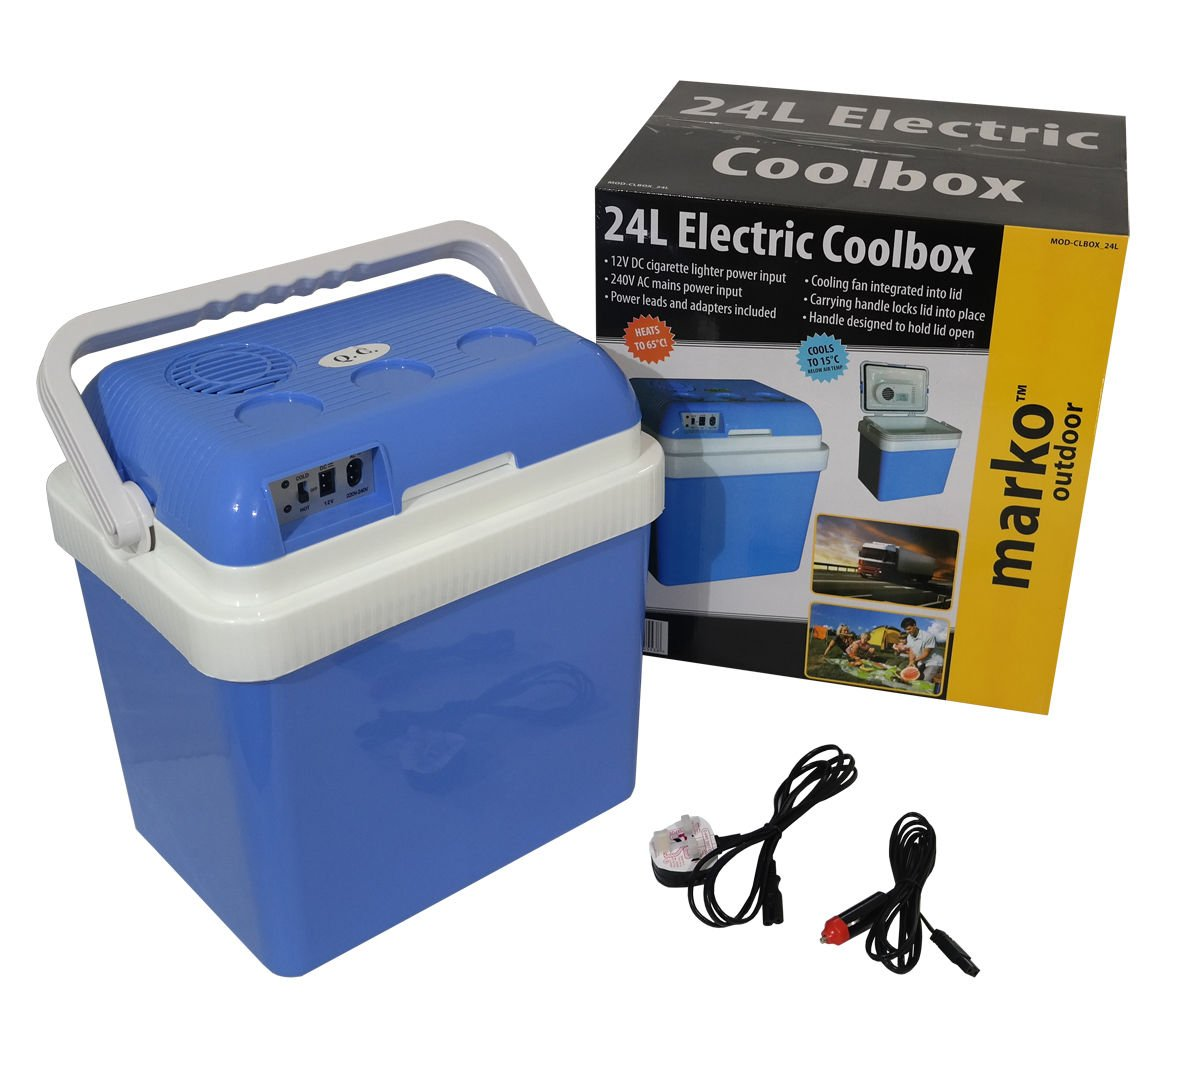 24L Litre Capacity Electrical Coolbox 240V AC & 12V DC Electric Cool Box  Cooler: Amazon.co.uk: Sports & Outdoors